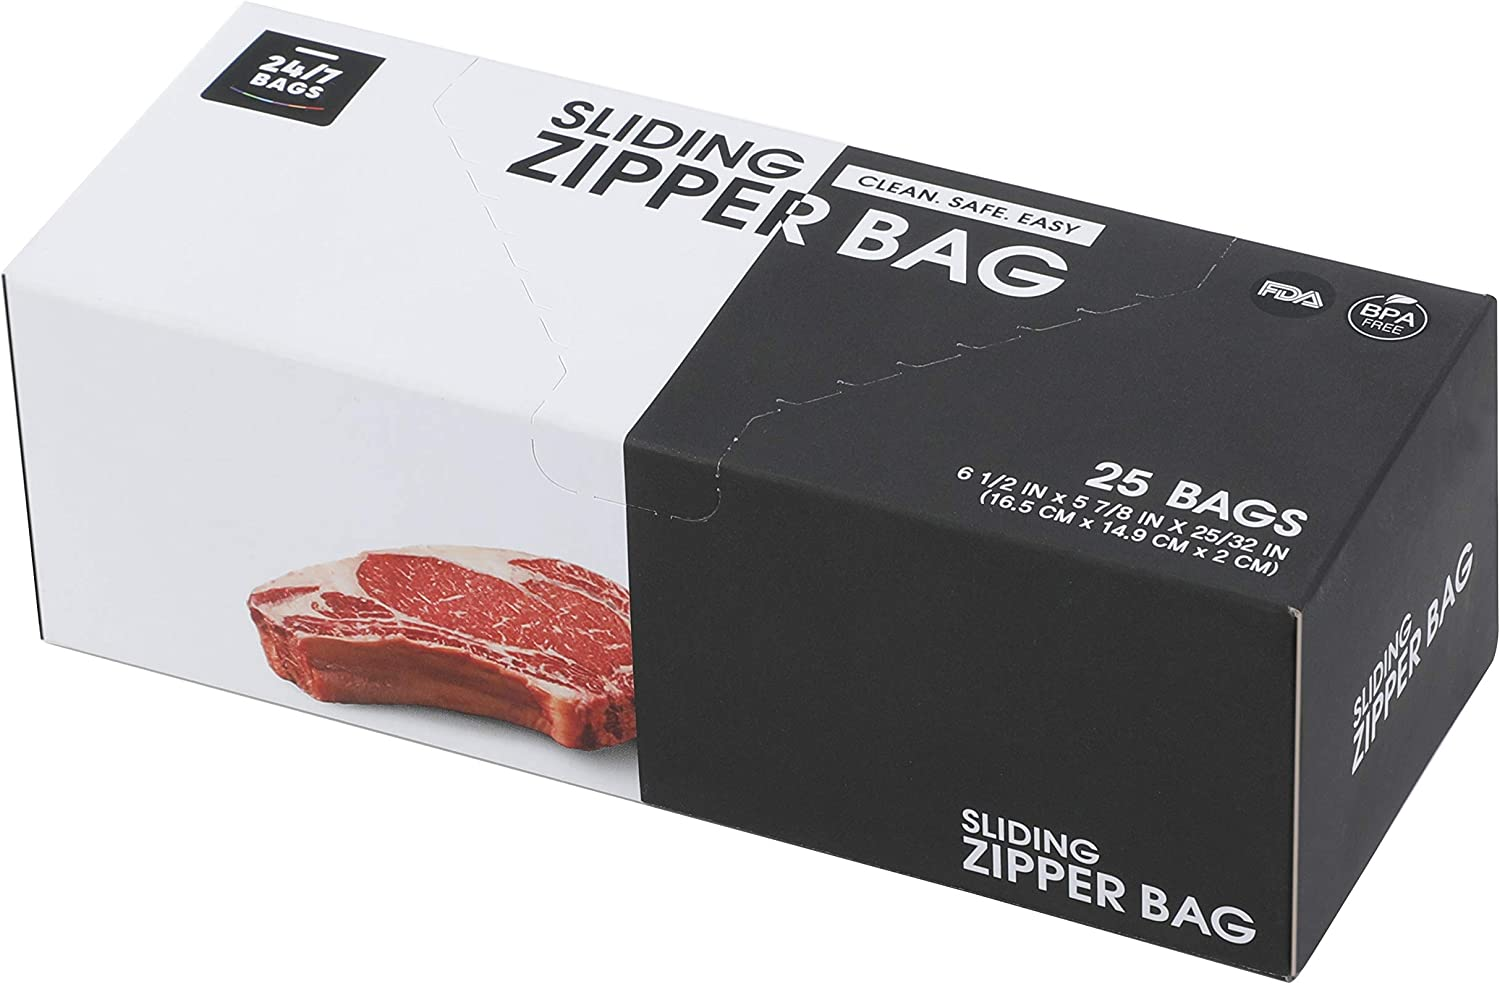 24/7 BPA Free Sliding Zipper Bags for Food. Storage Food Bags, Freezer Bag with New Seal Technology. (6 1/2